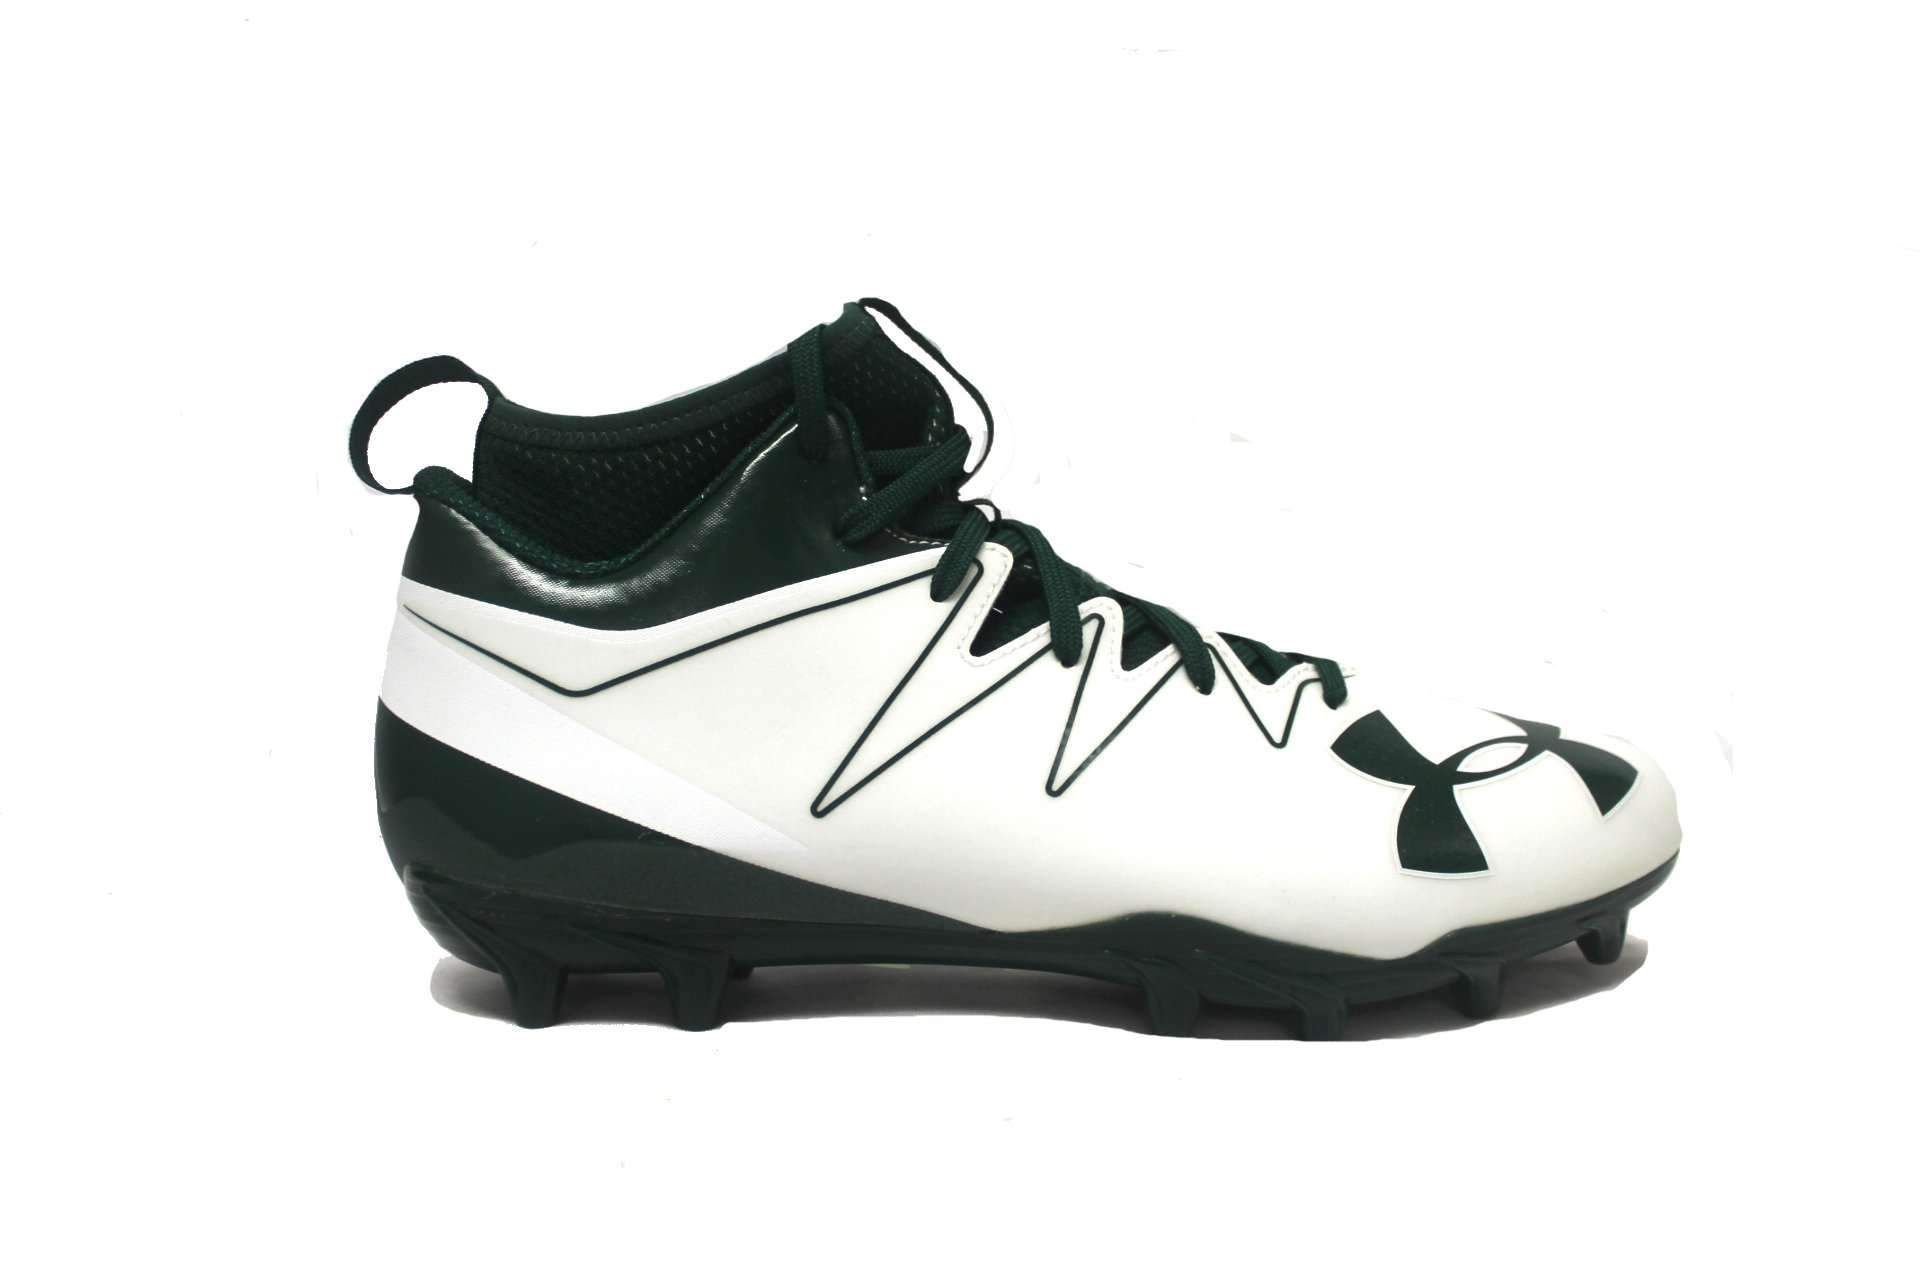 f24b33d77d6e Under Armour Men's Team Nitro Mid MC Wide Football Cleats | Products ...